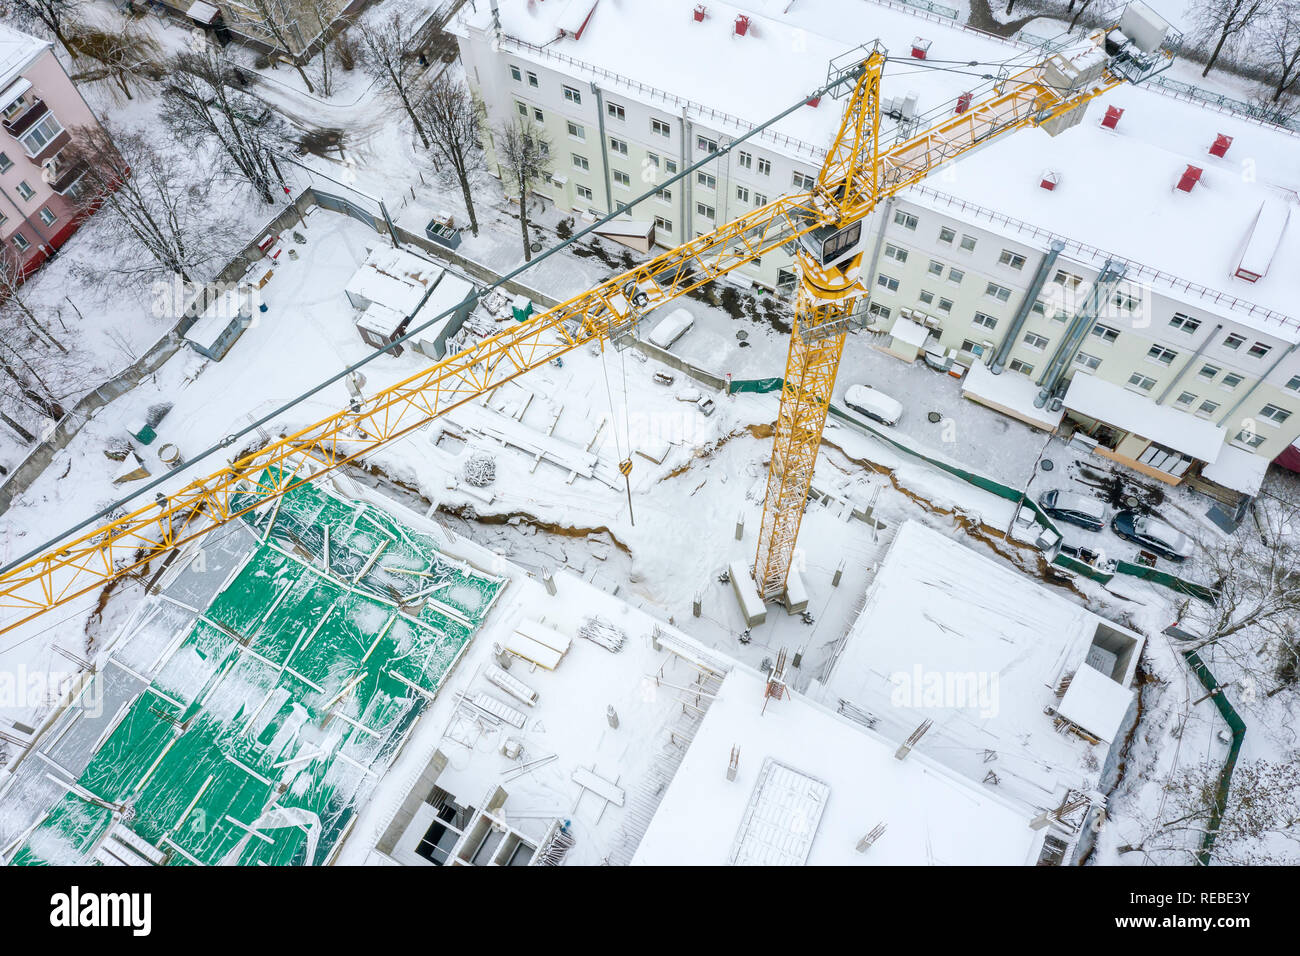 aerial top view of tall tower crane working at construction site in winter. drone photography - Stock Image